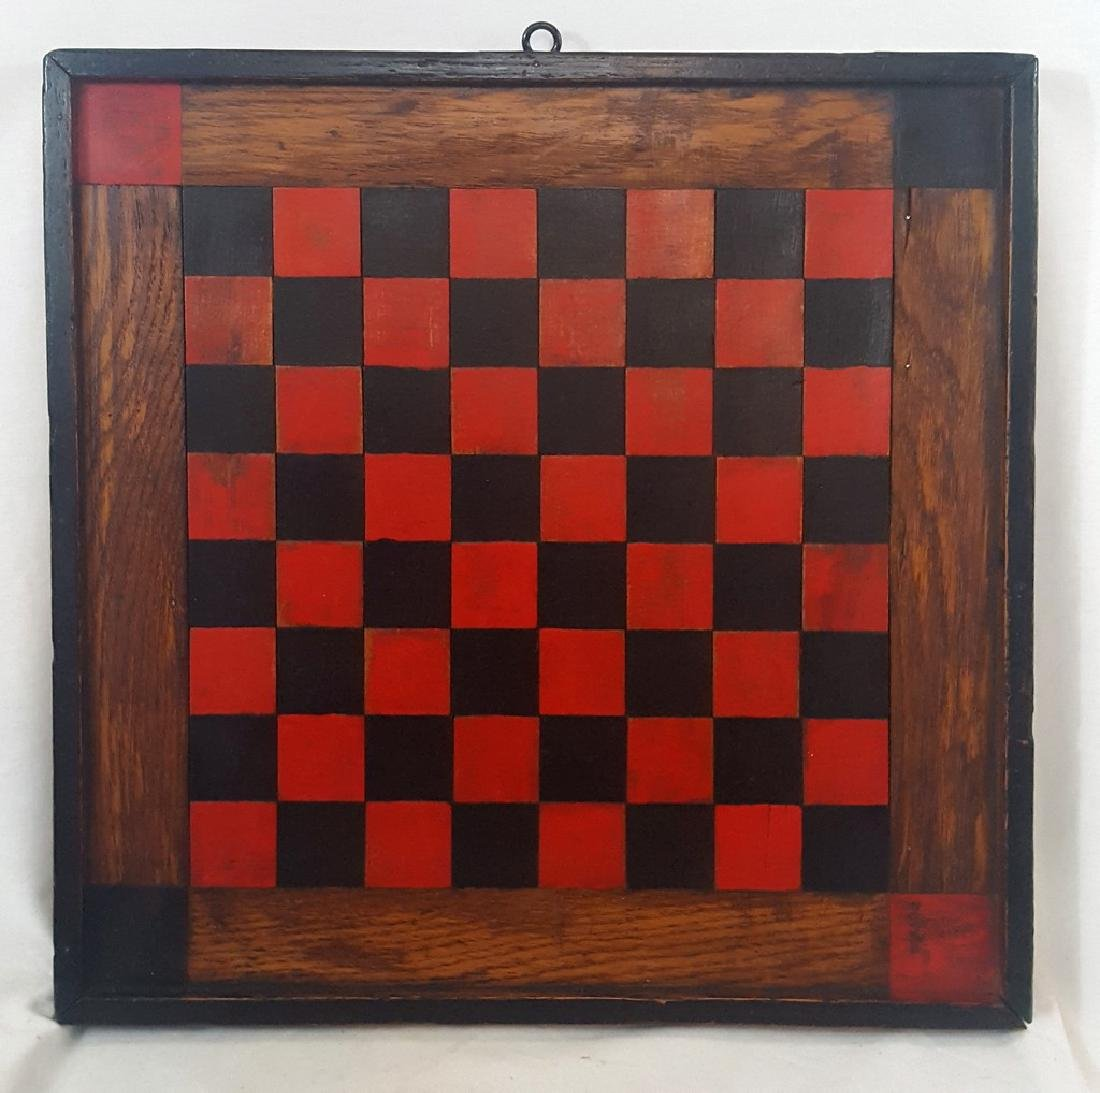 Marquetry and Painted Checkers Board Ca 1900-1920